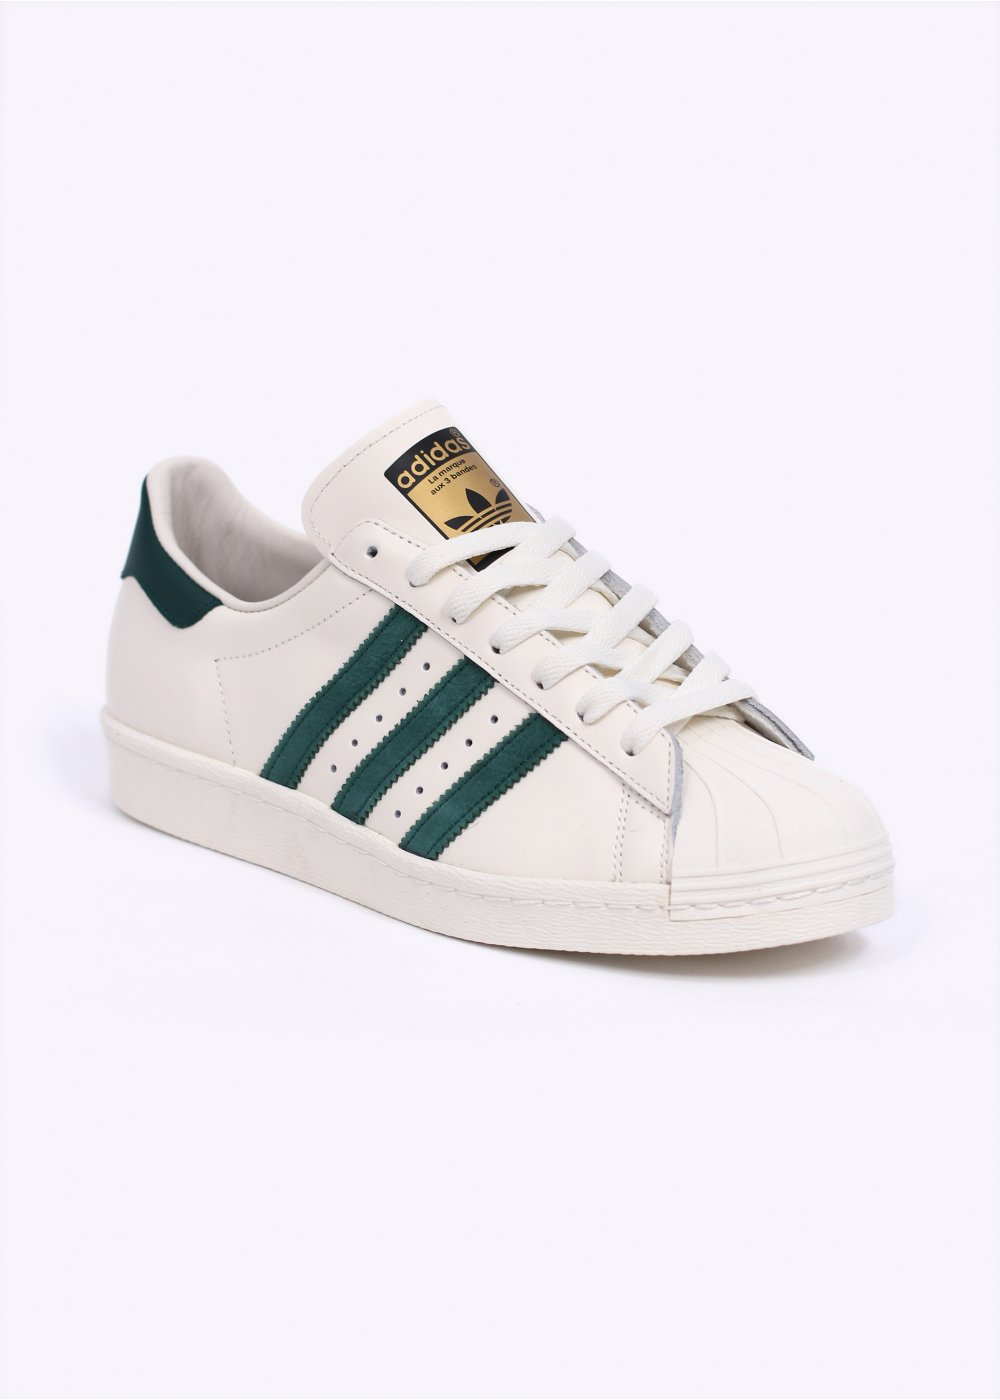 adidas superstar 80s green white